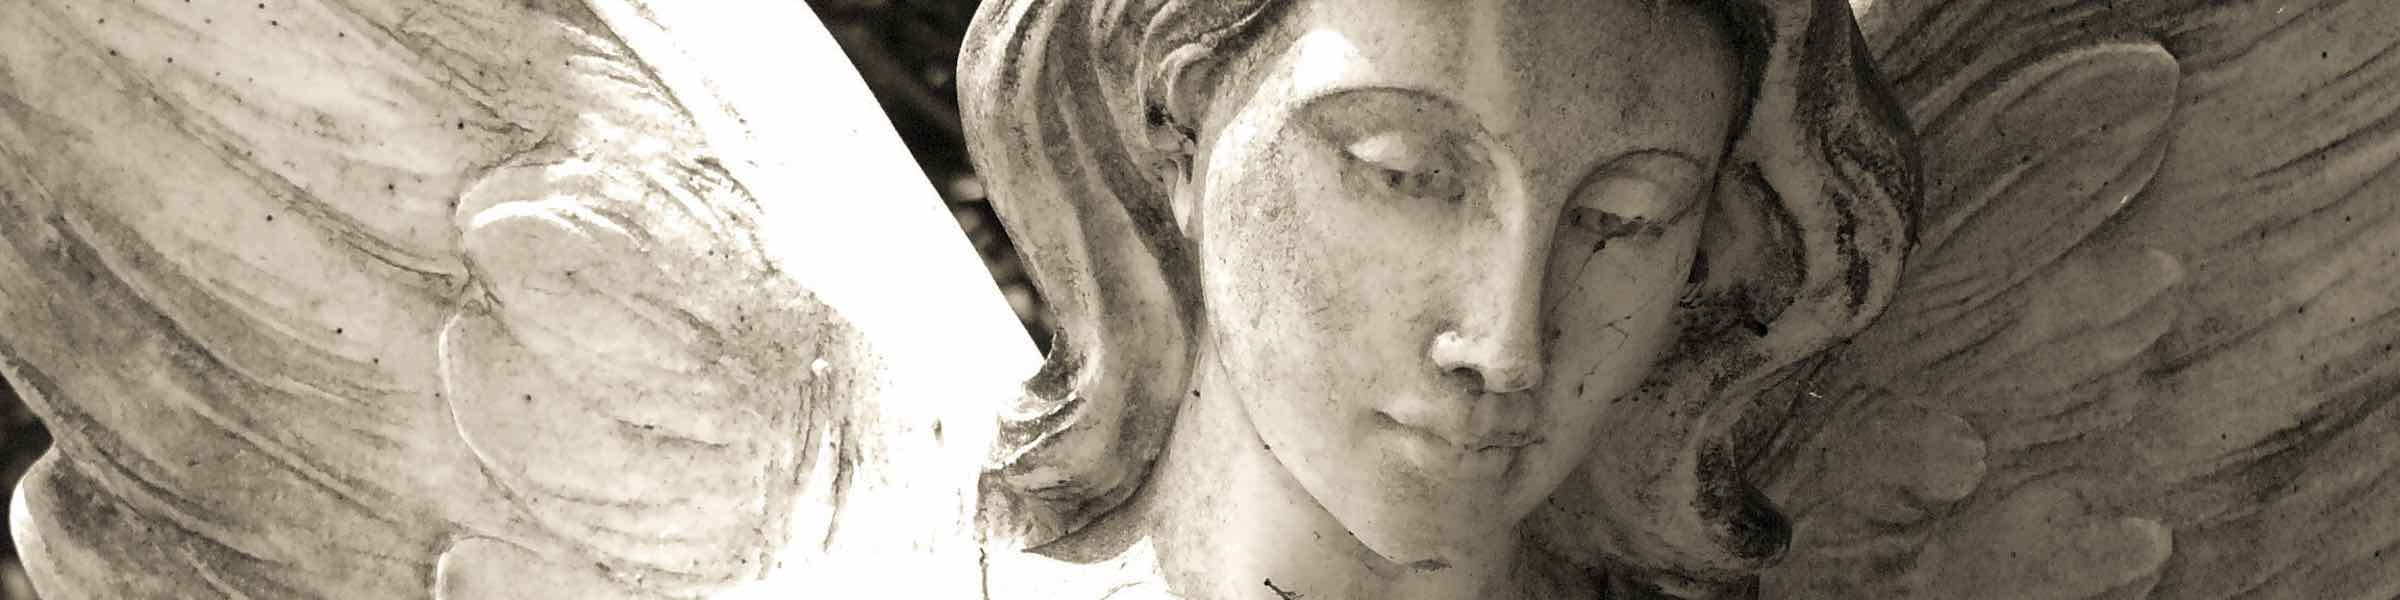 Close up of statue of a female angel in Bonaventure Cemetery.